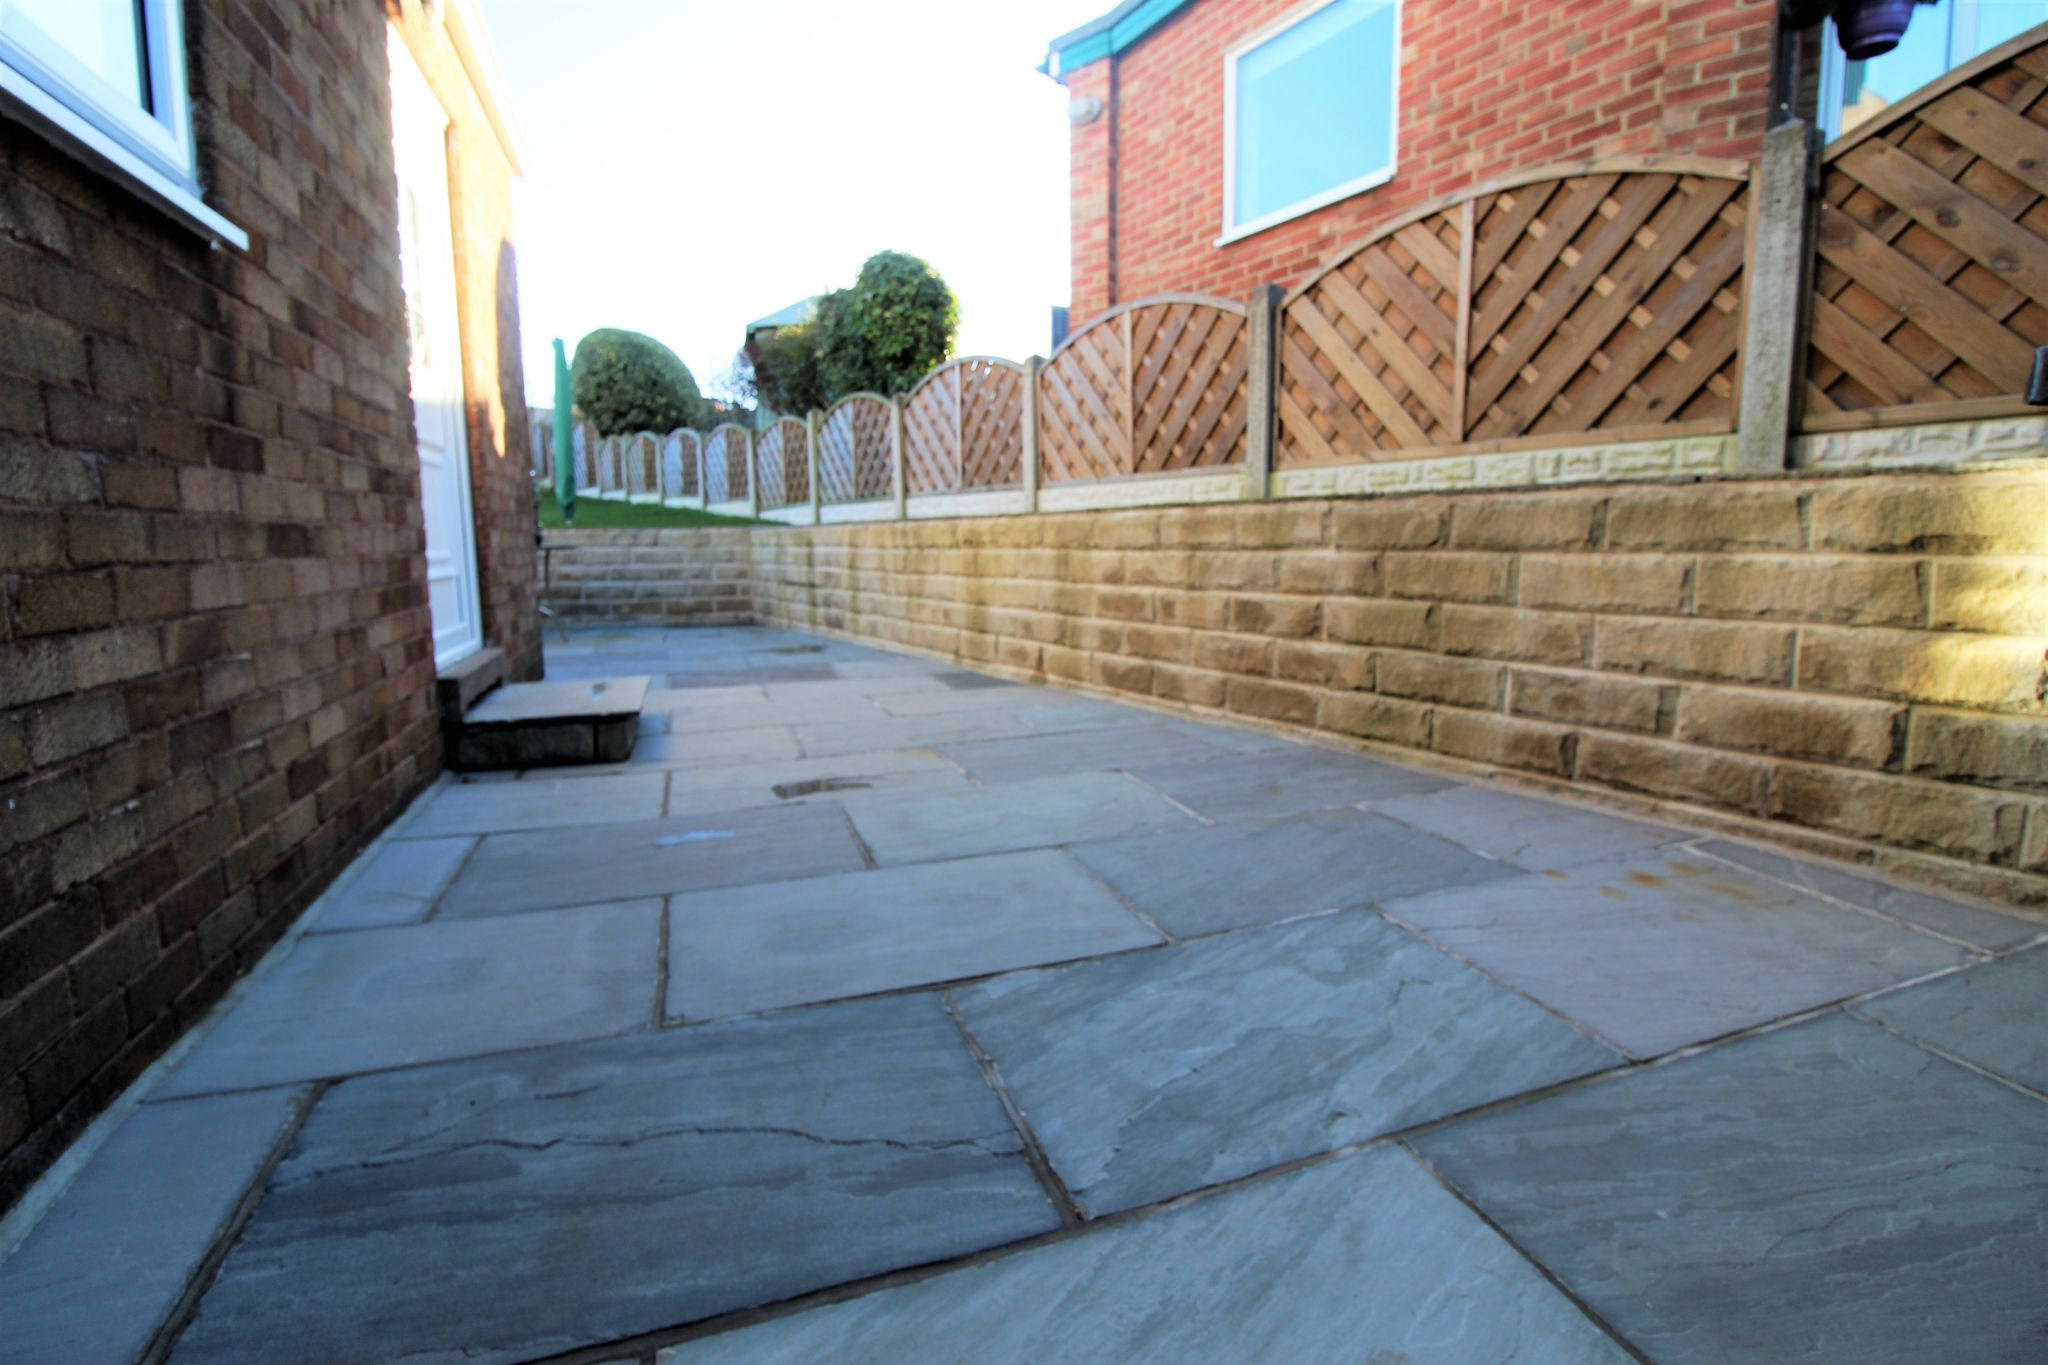 4 bedroom semi-detached bungalow SSTC in Brighouse - Side patio